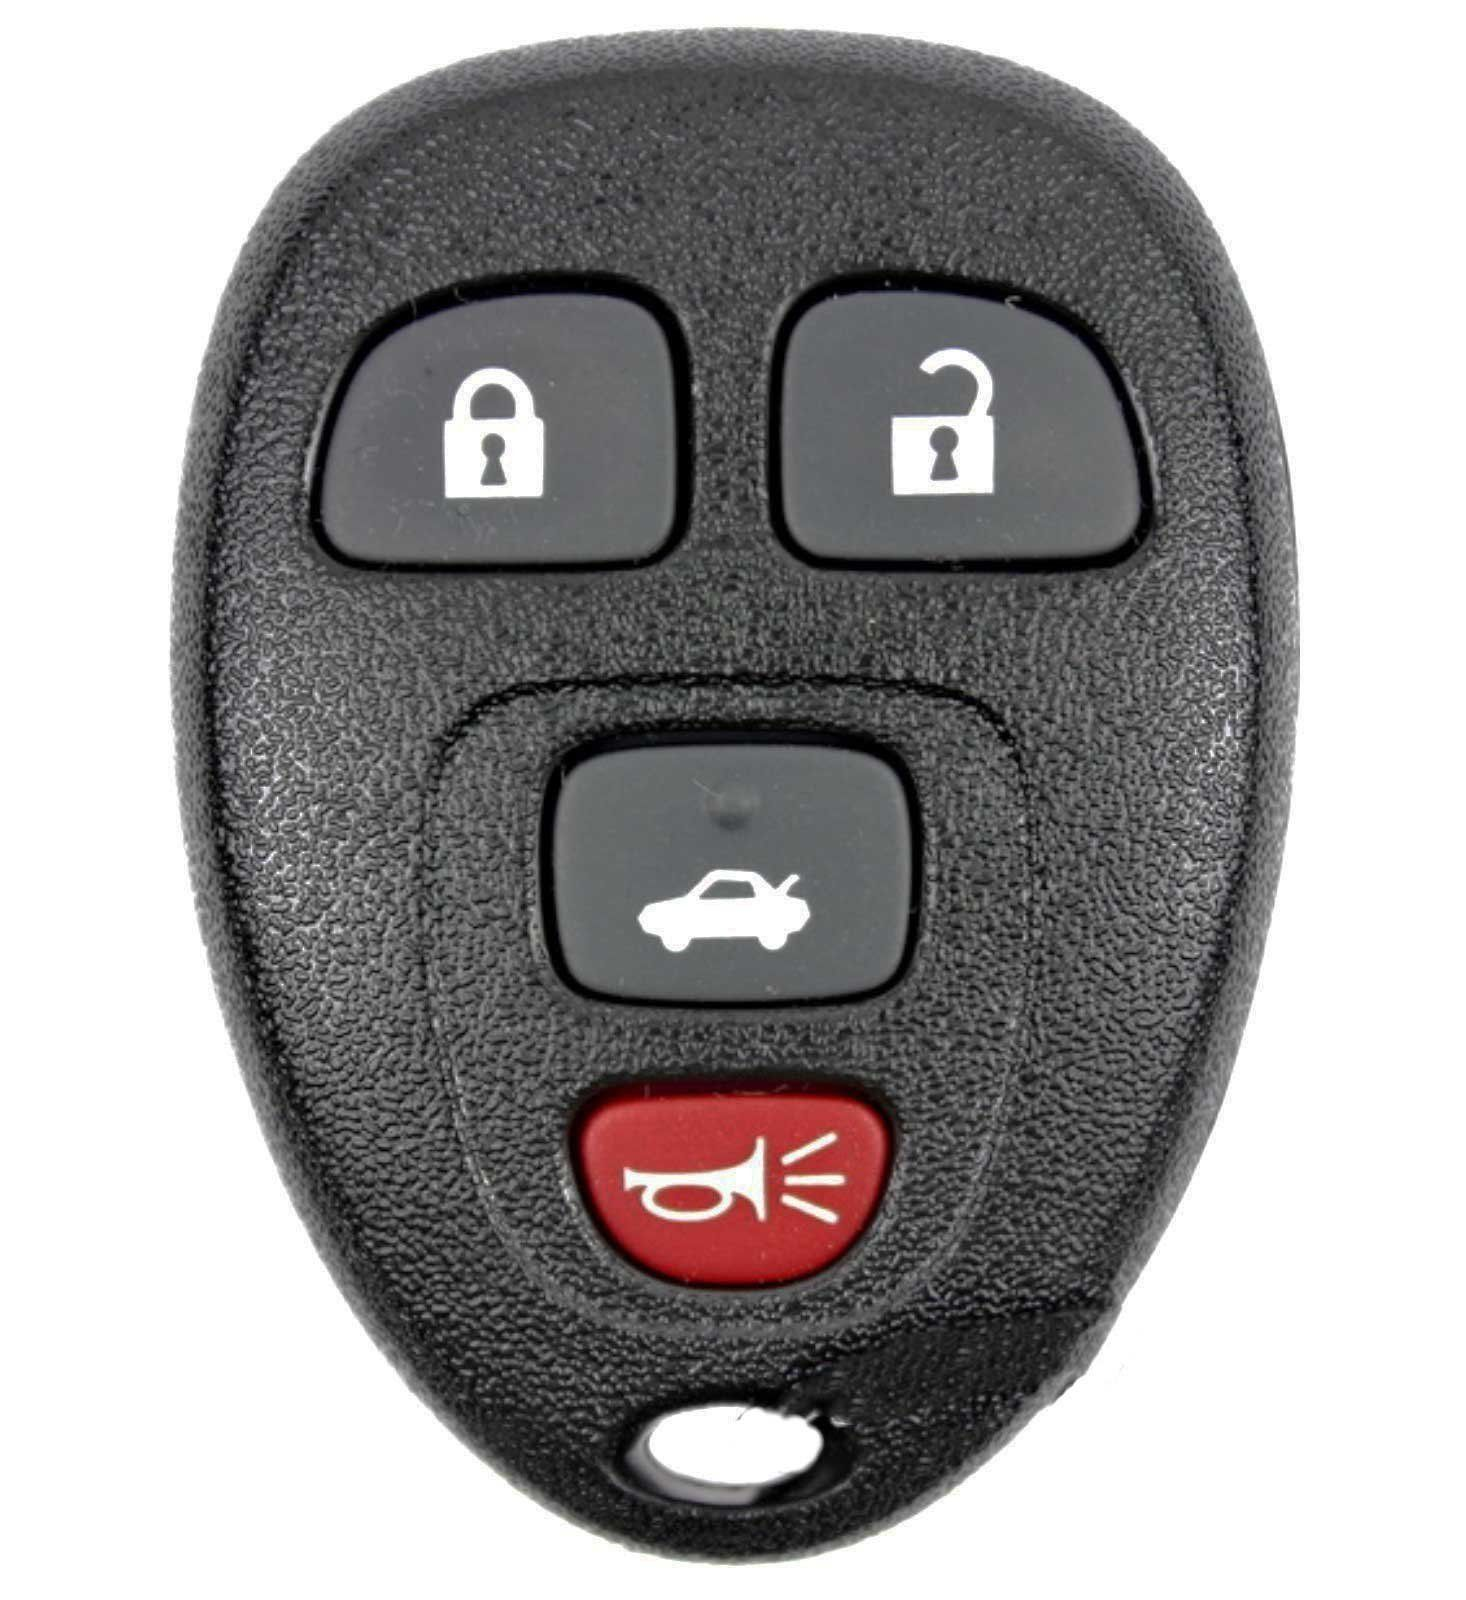 2006 2011 Chevrolet Malibu Keyless Entry Remote Fob Clicker